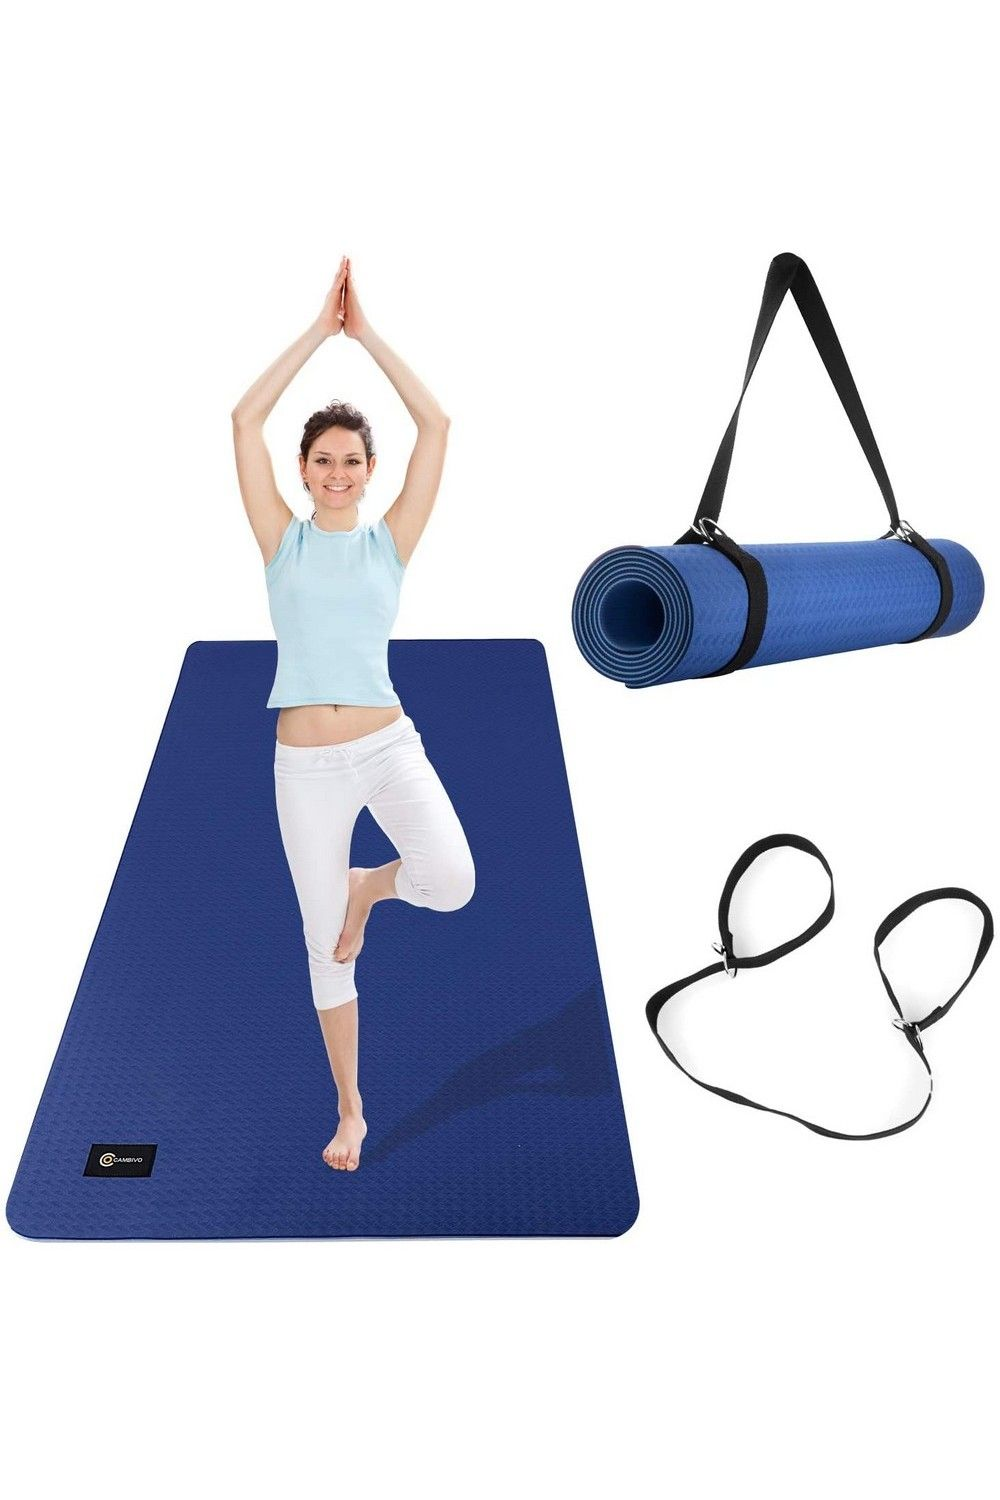 11++ Wide thick yoga mat ideas